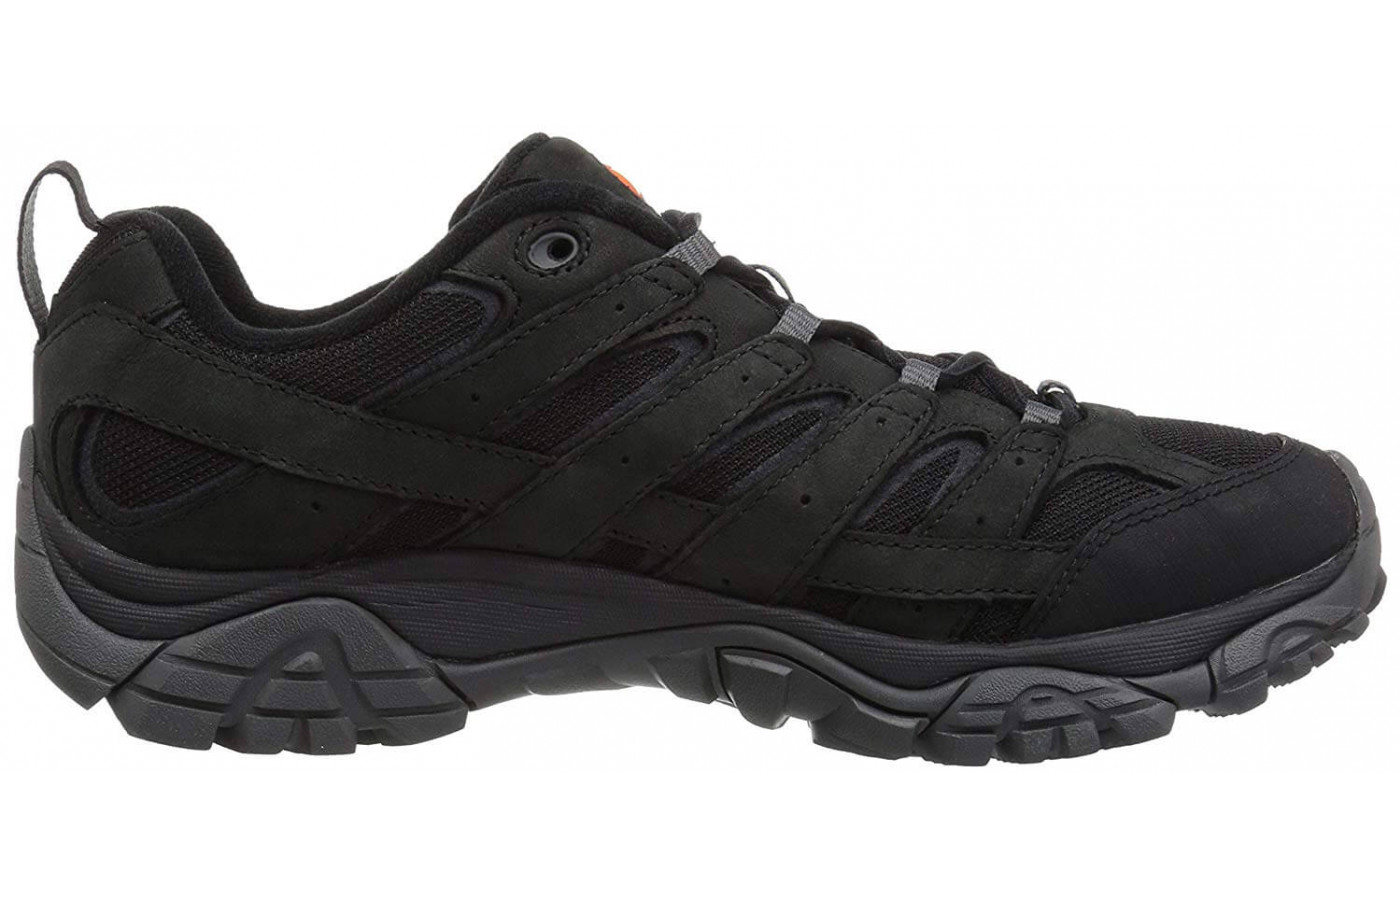 Merrell Moab 2 Smooth side